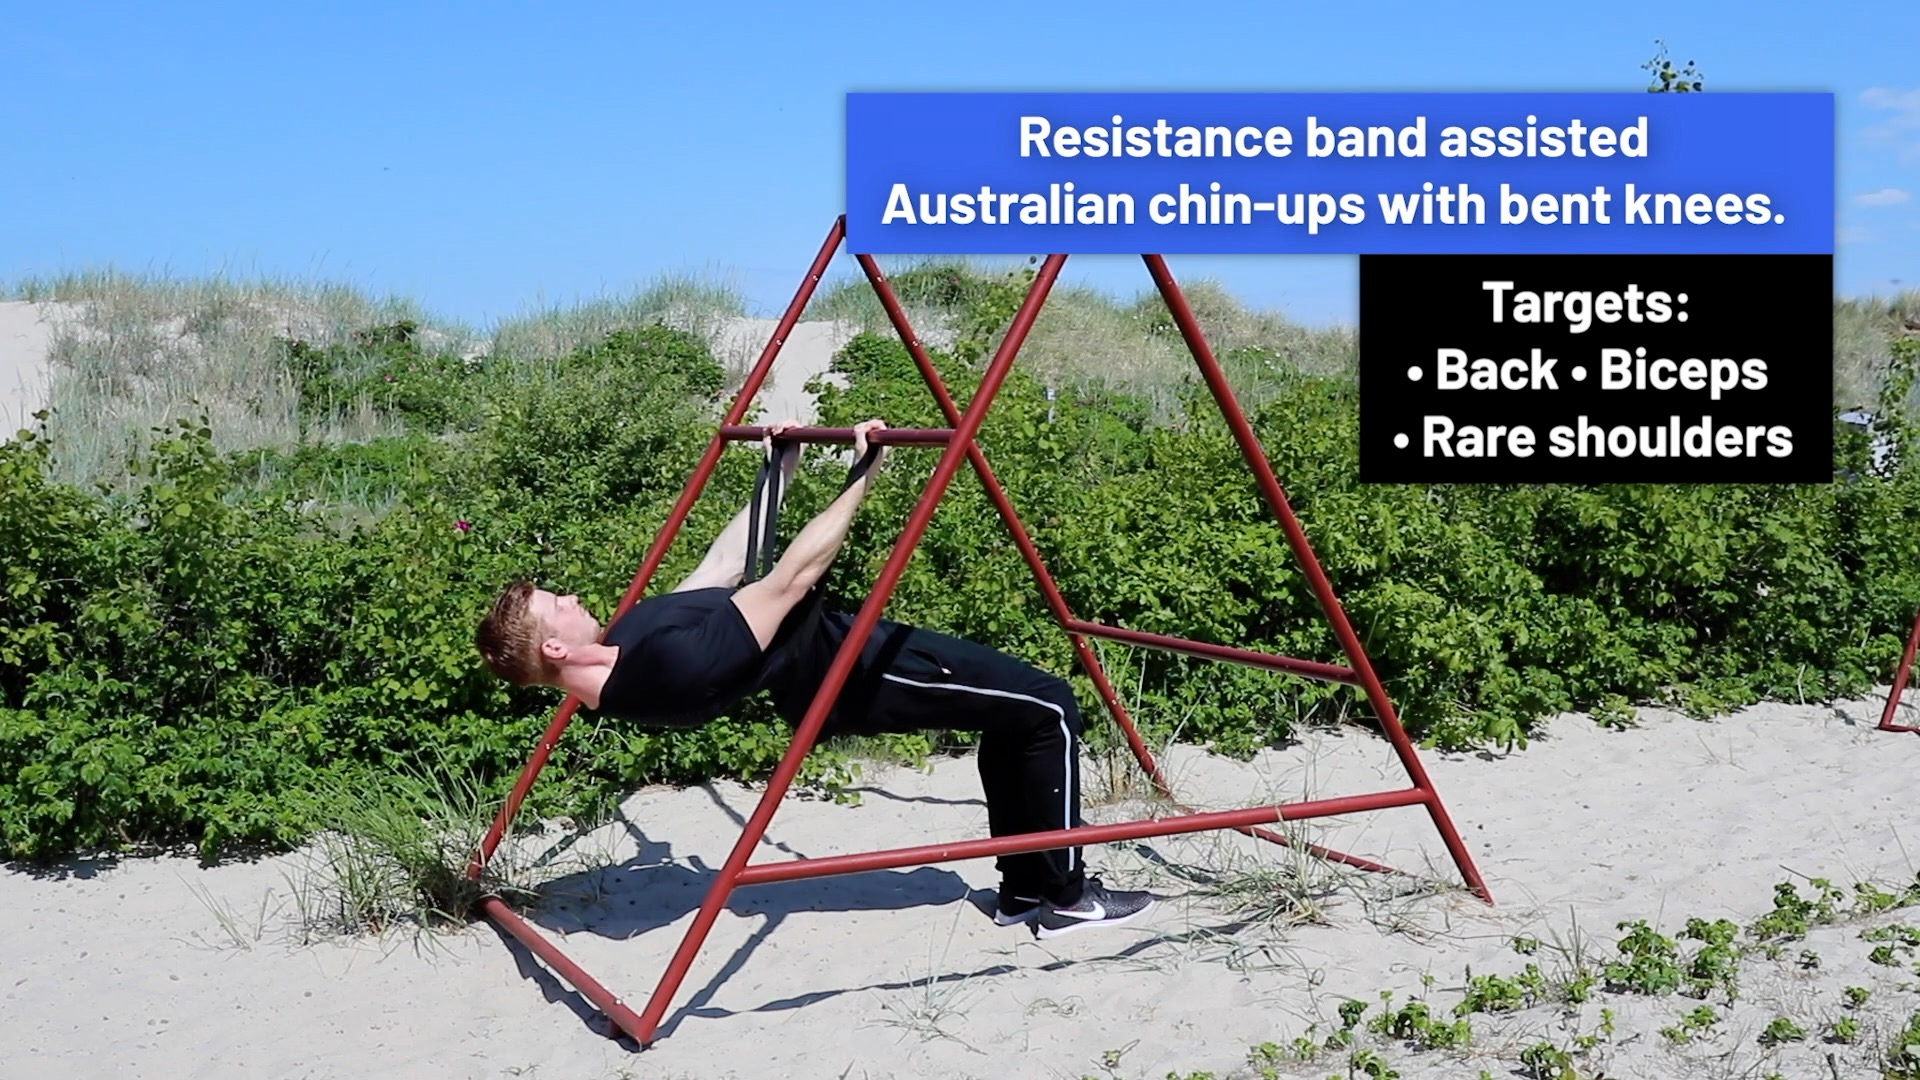 Resistance band assisted Australian chin-ups with bent knees